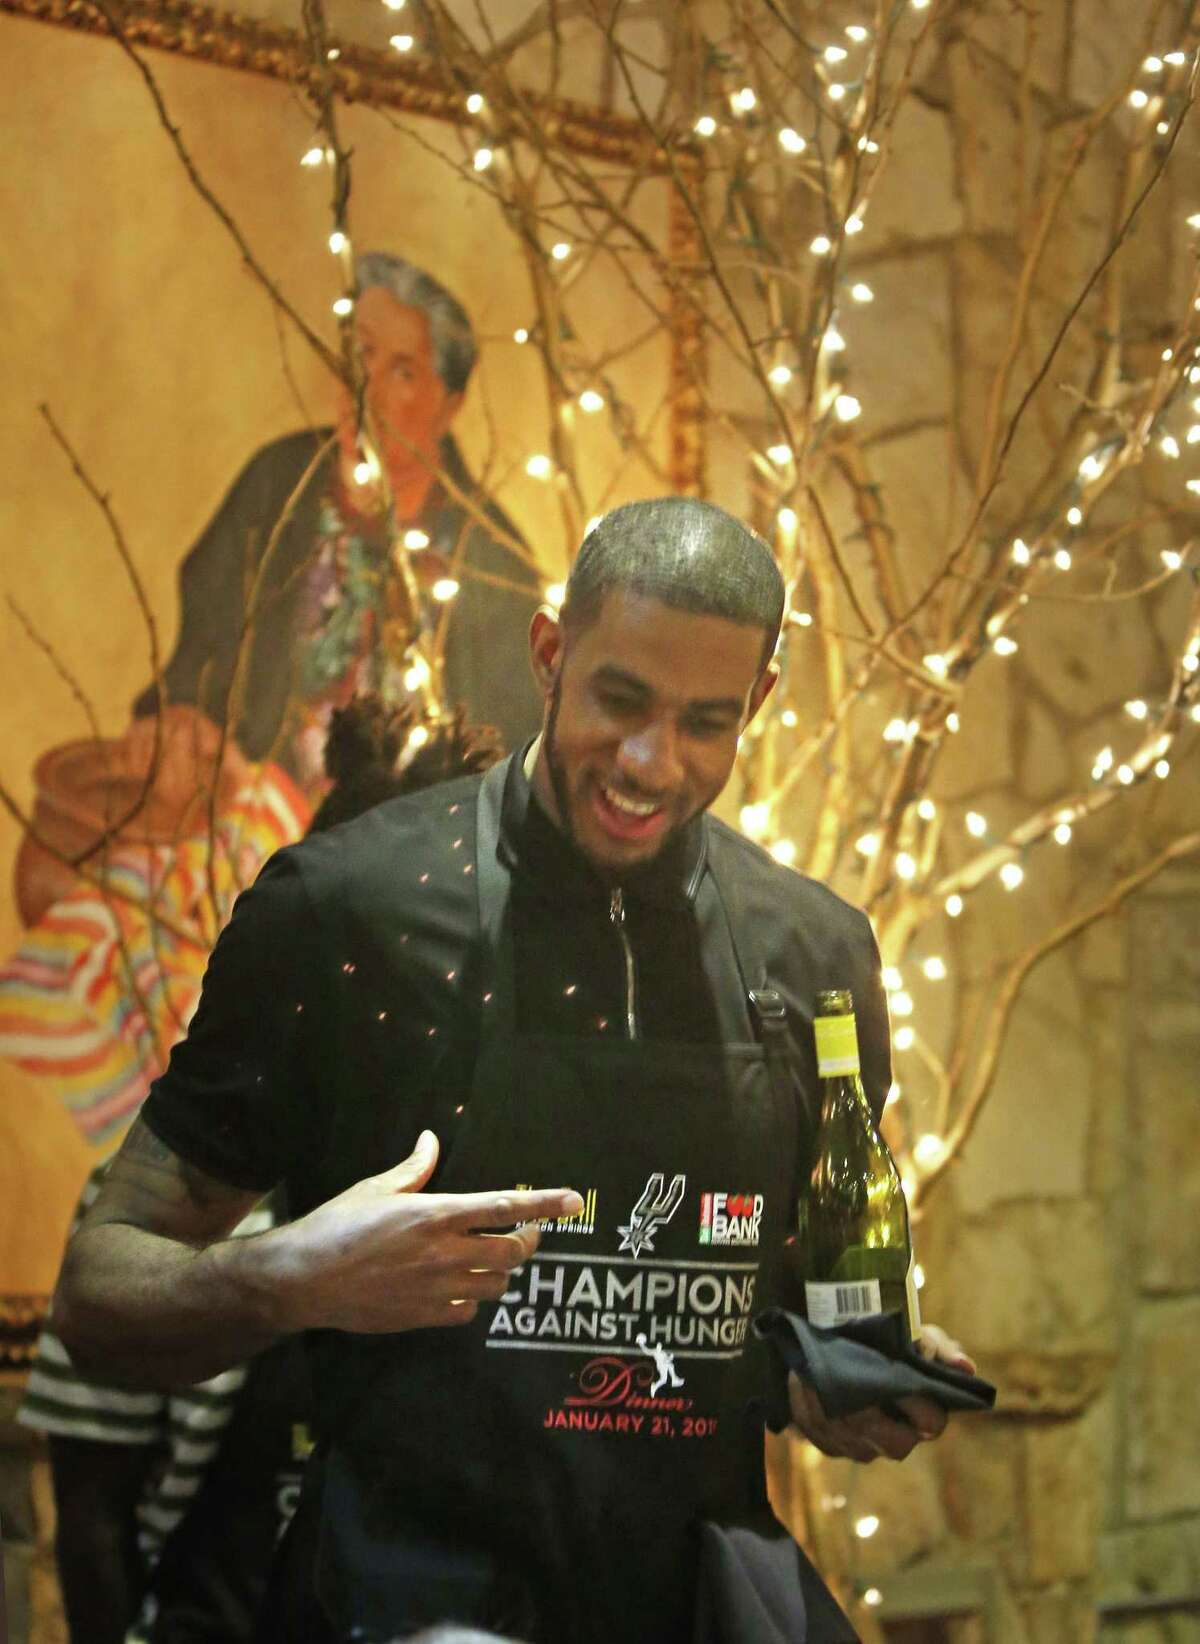 LaMarcus Aldridge prepares to serve wine. San Antonio Spurs coaches and players serve food and wine tonight at the 8th annual Champions Against Hunger Dinner, a fund-raiser for the San Antonio Food Bank on Monday, January 21, 2019 the Grill at Leon Springs